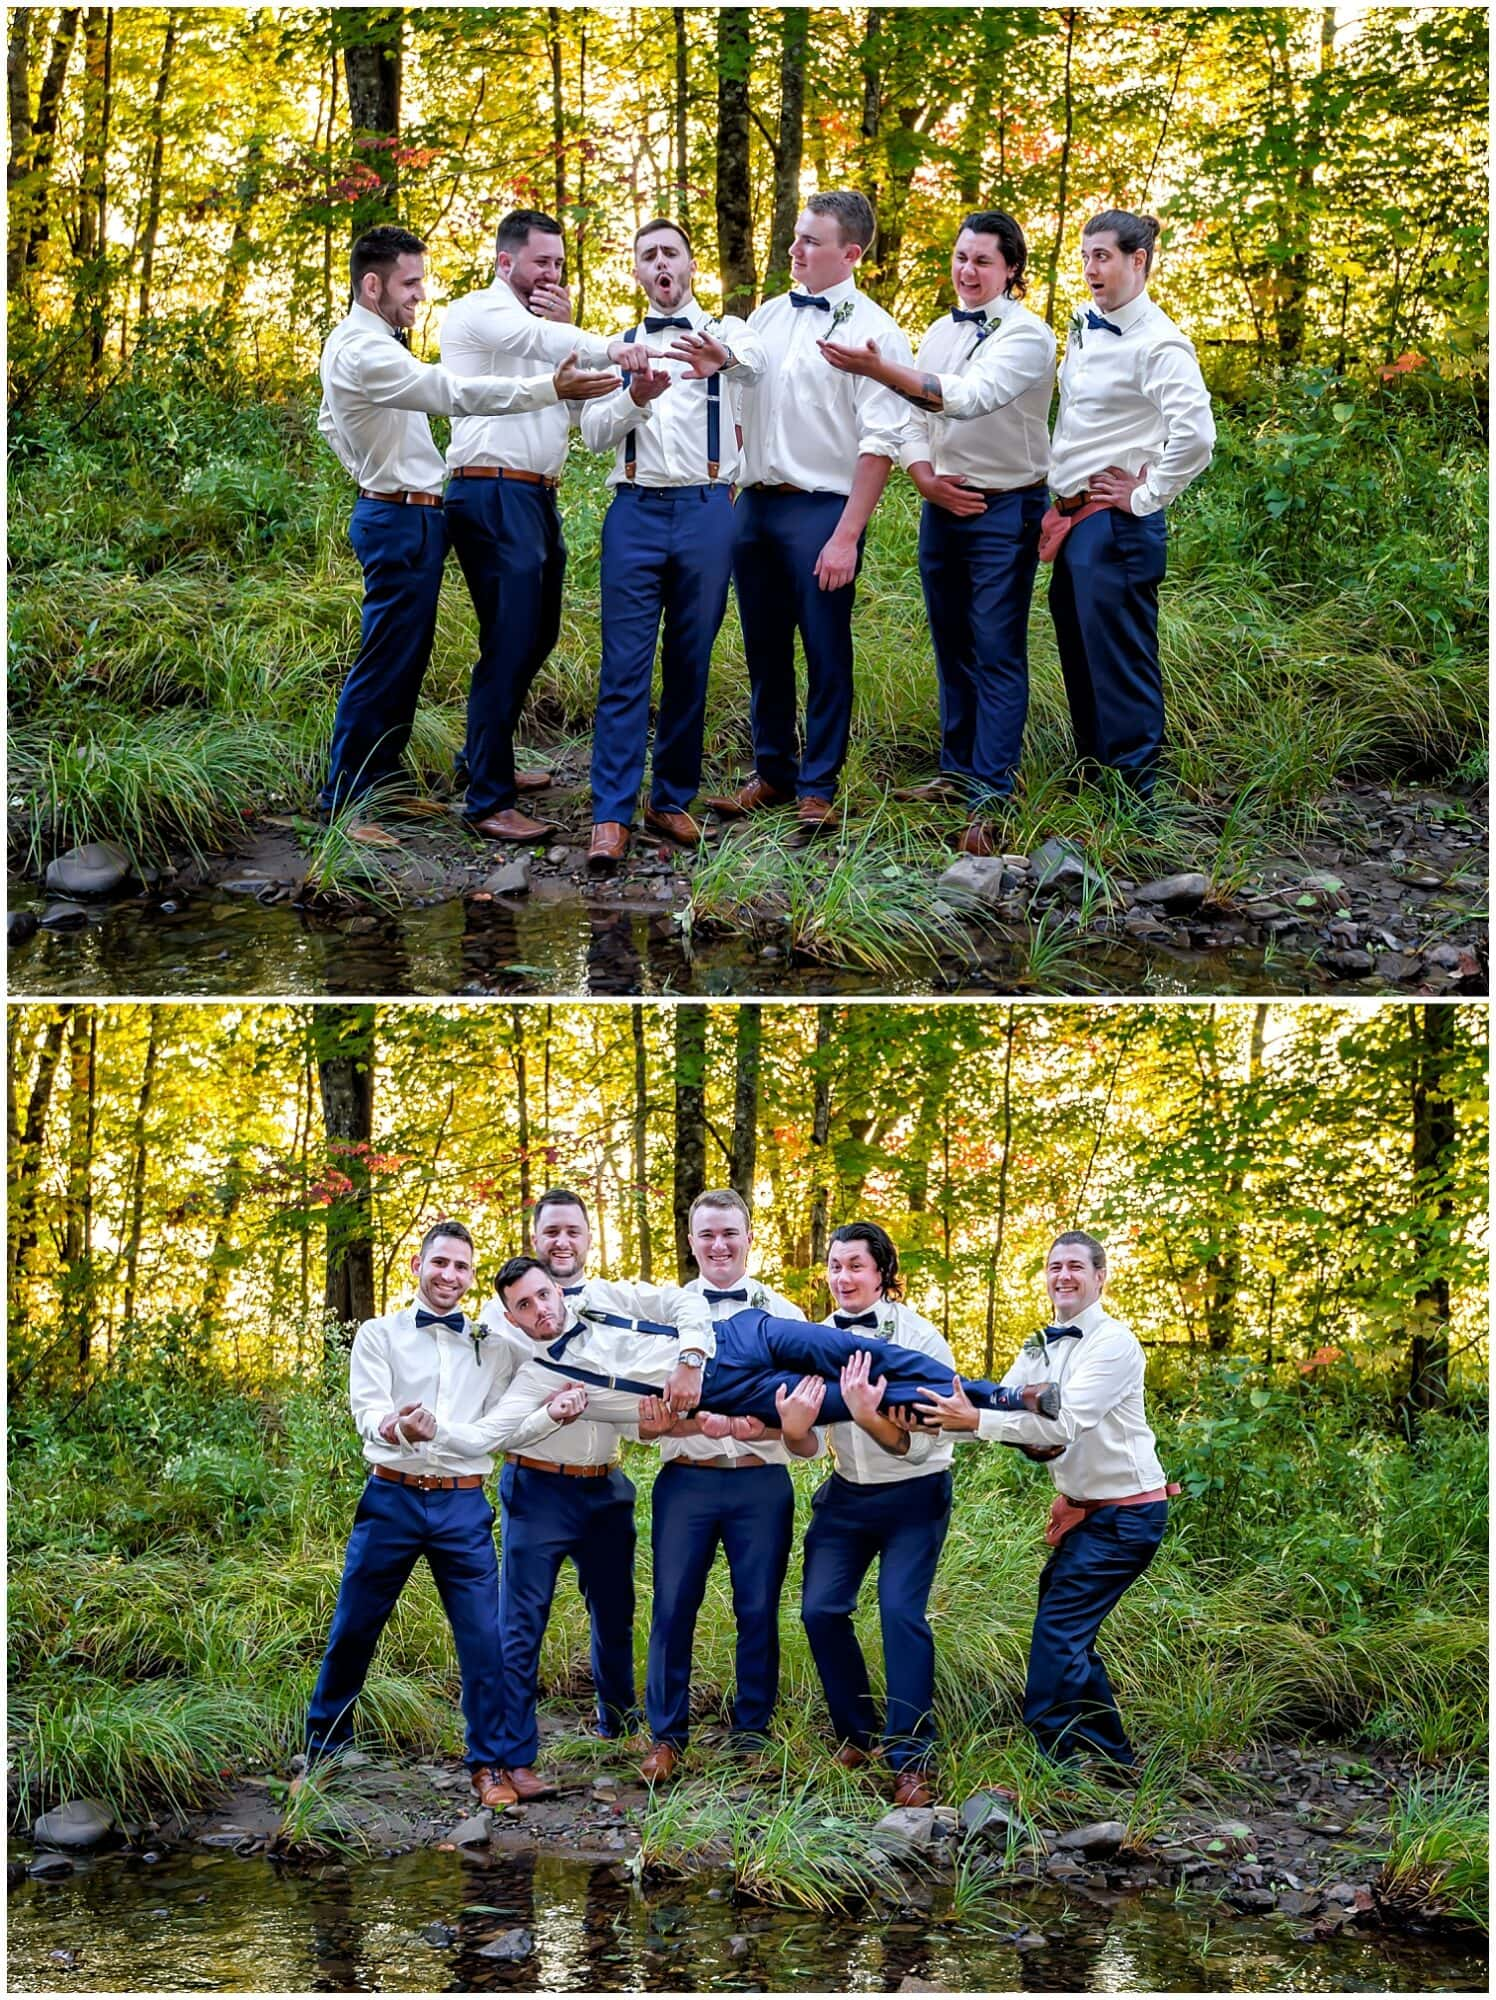 The groom poses for wedding photos with his groomsmen at the Sadie Belle Farm wedding venue.